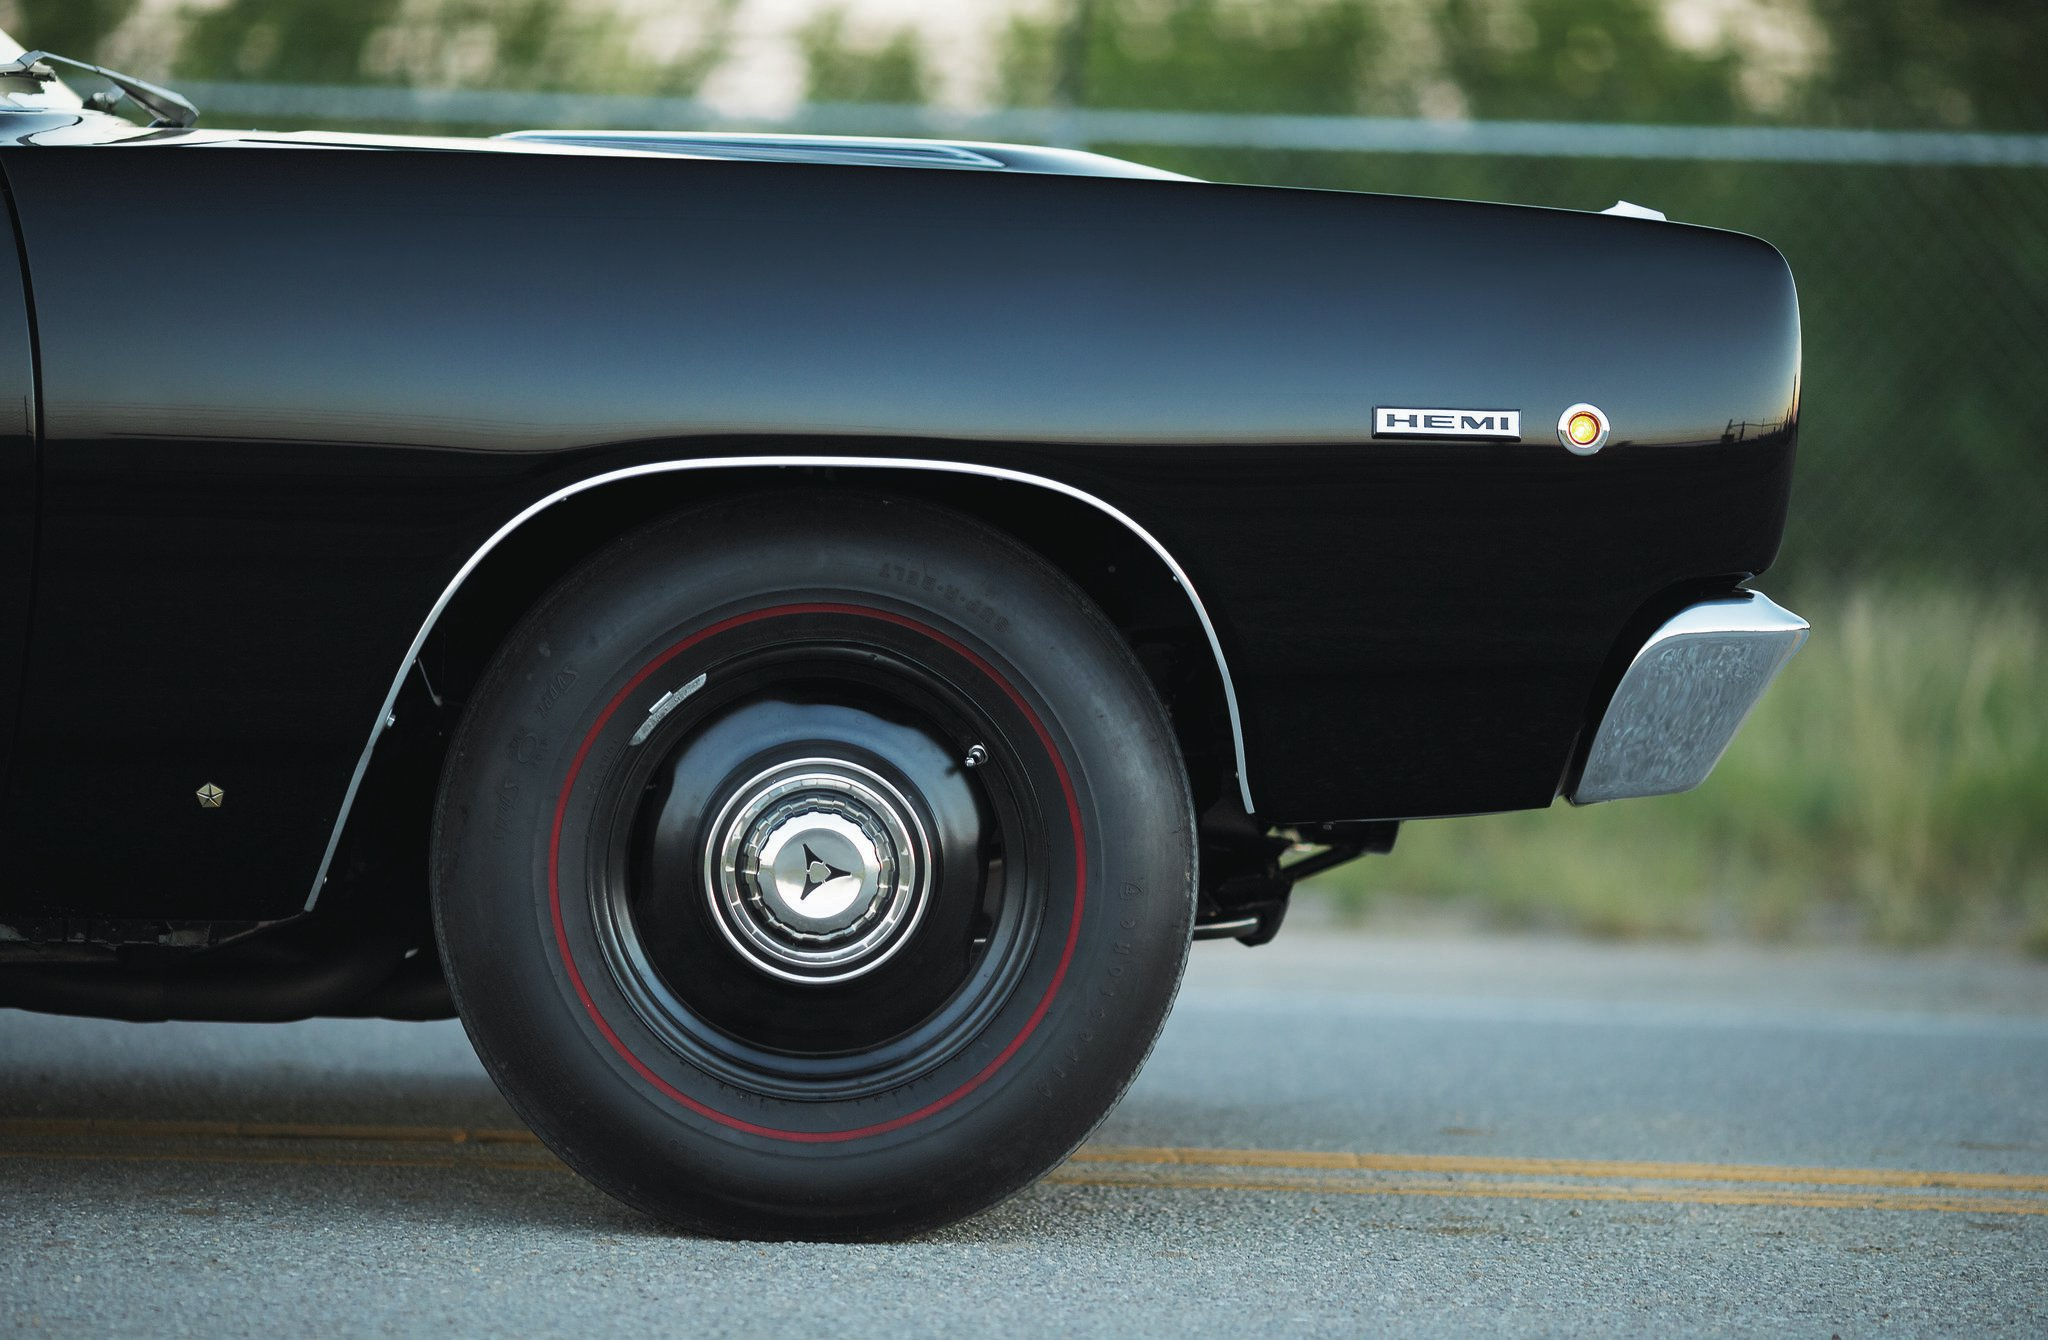 Those are 15-inch steelies wrapped in Coker repro bias-ply redline G70-15s all the way around. Watching this car run 10s on those tires is like watching a supermodel set a track-and-field record in stiletto heels. Astounding.